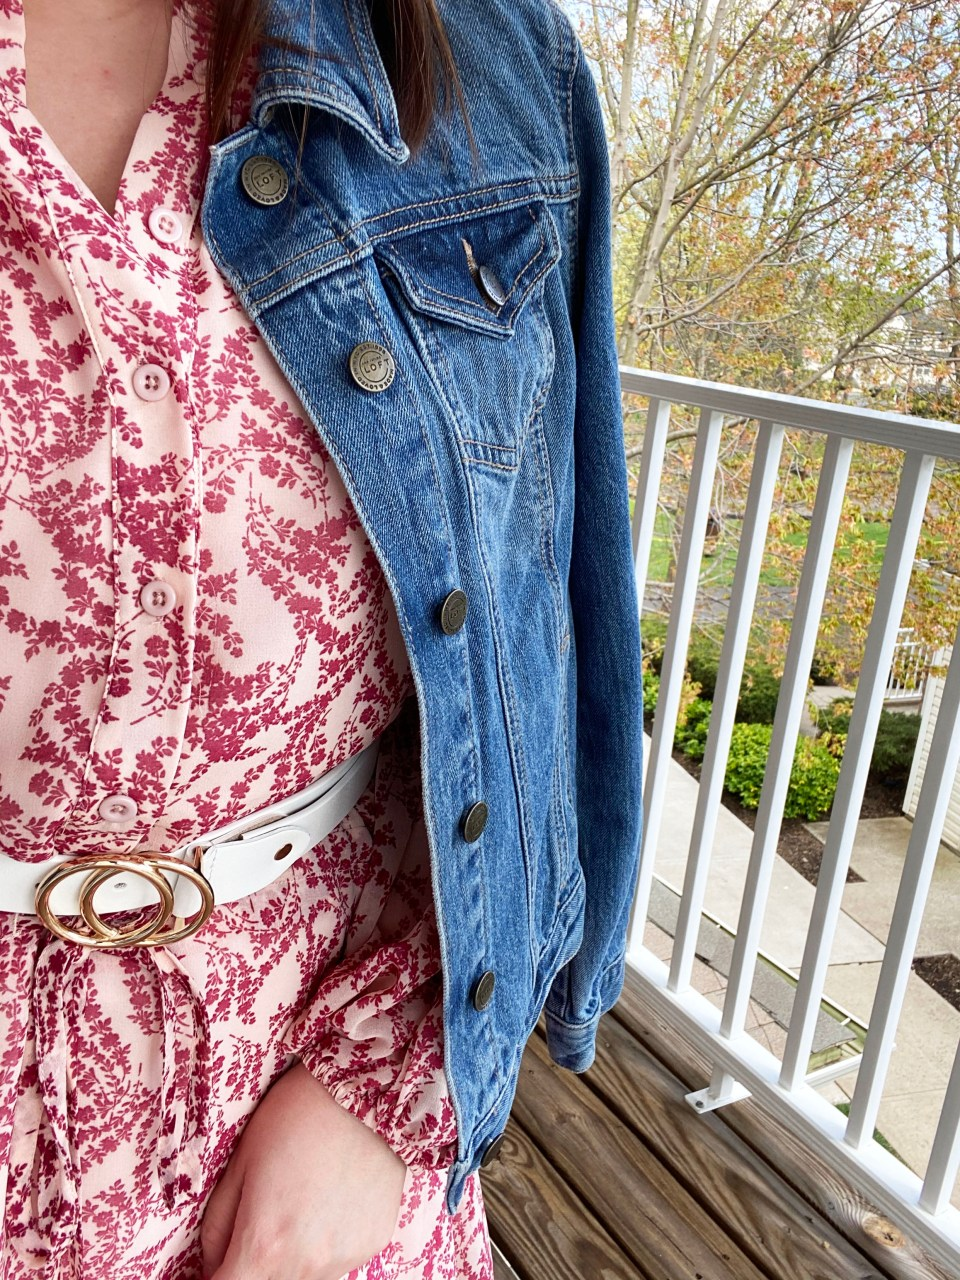 Grapevine Dress + Denim Jacket 14